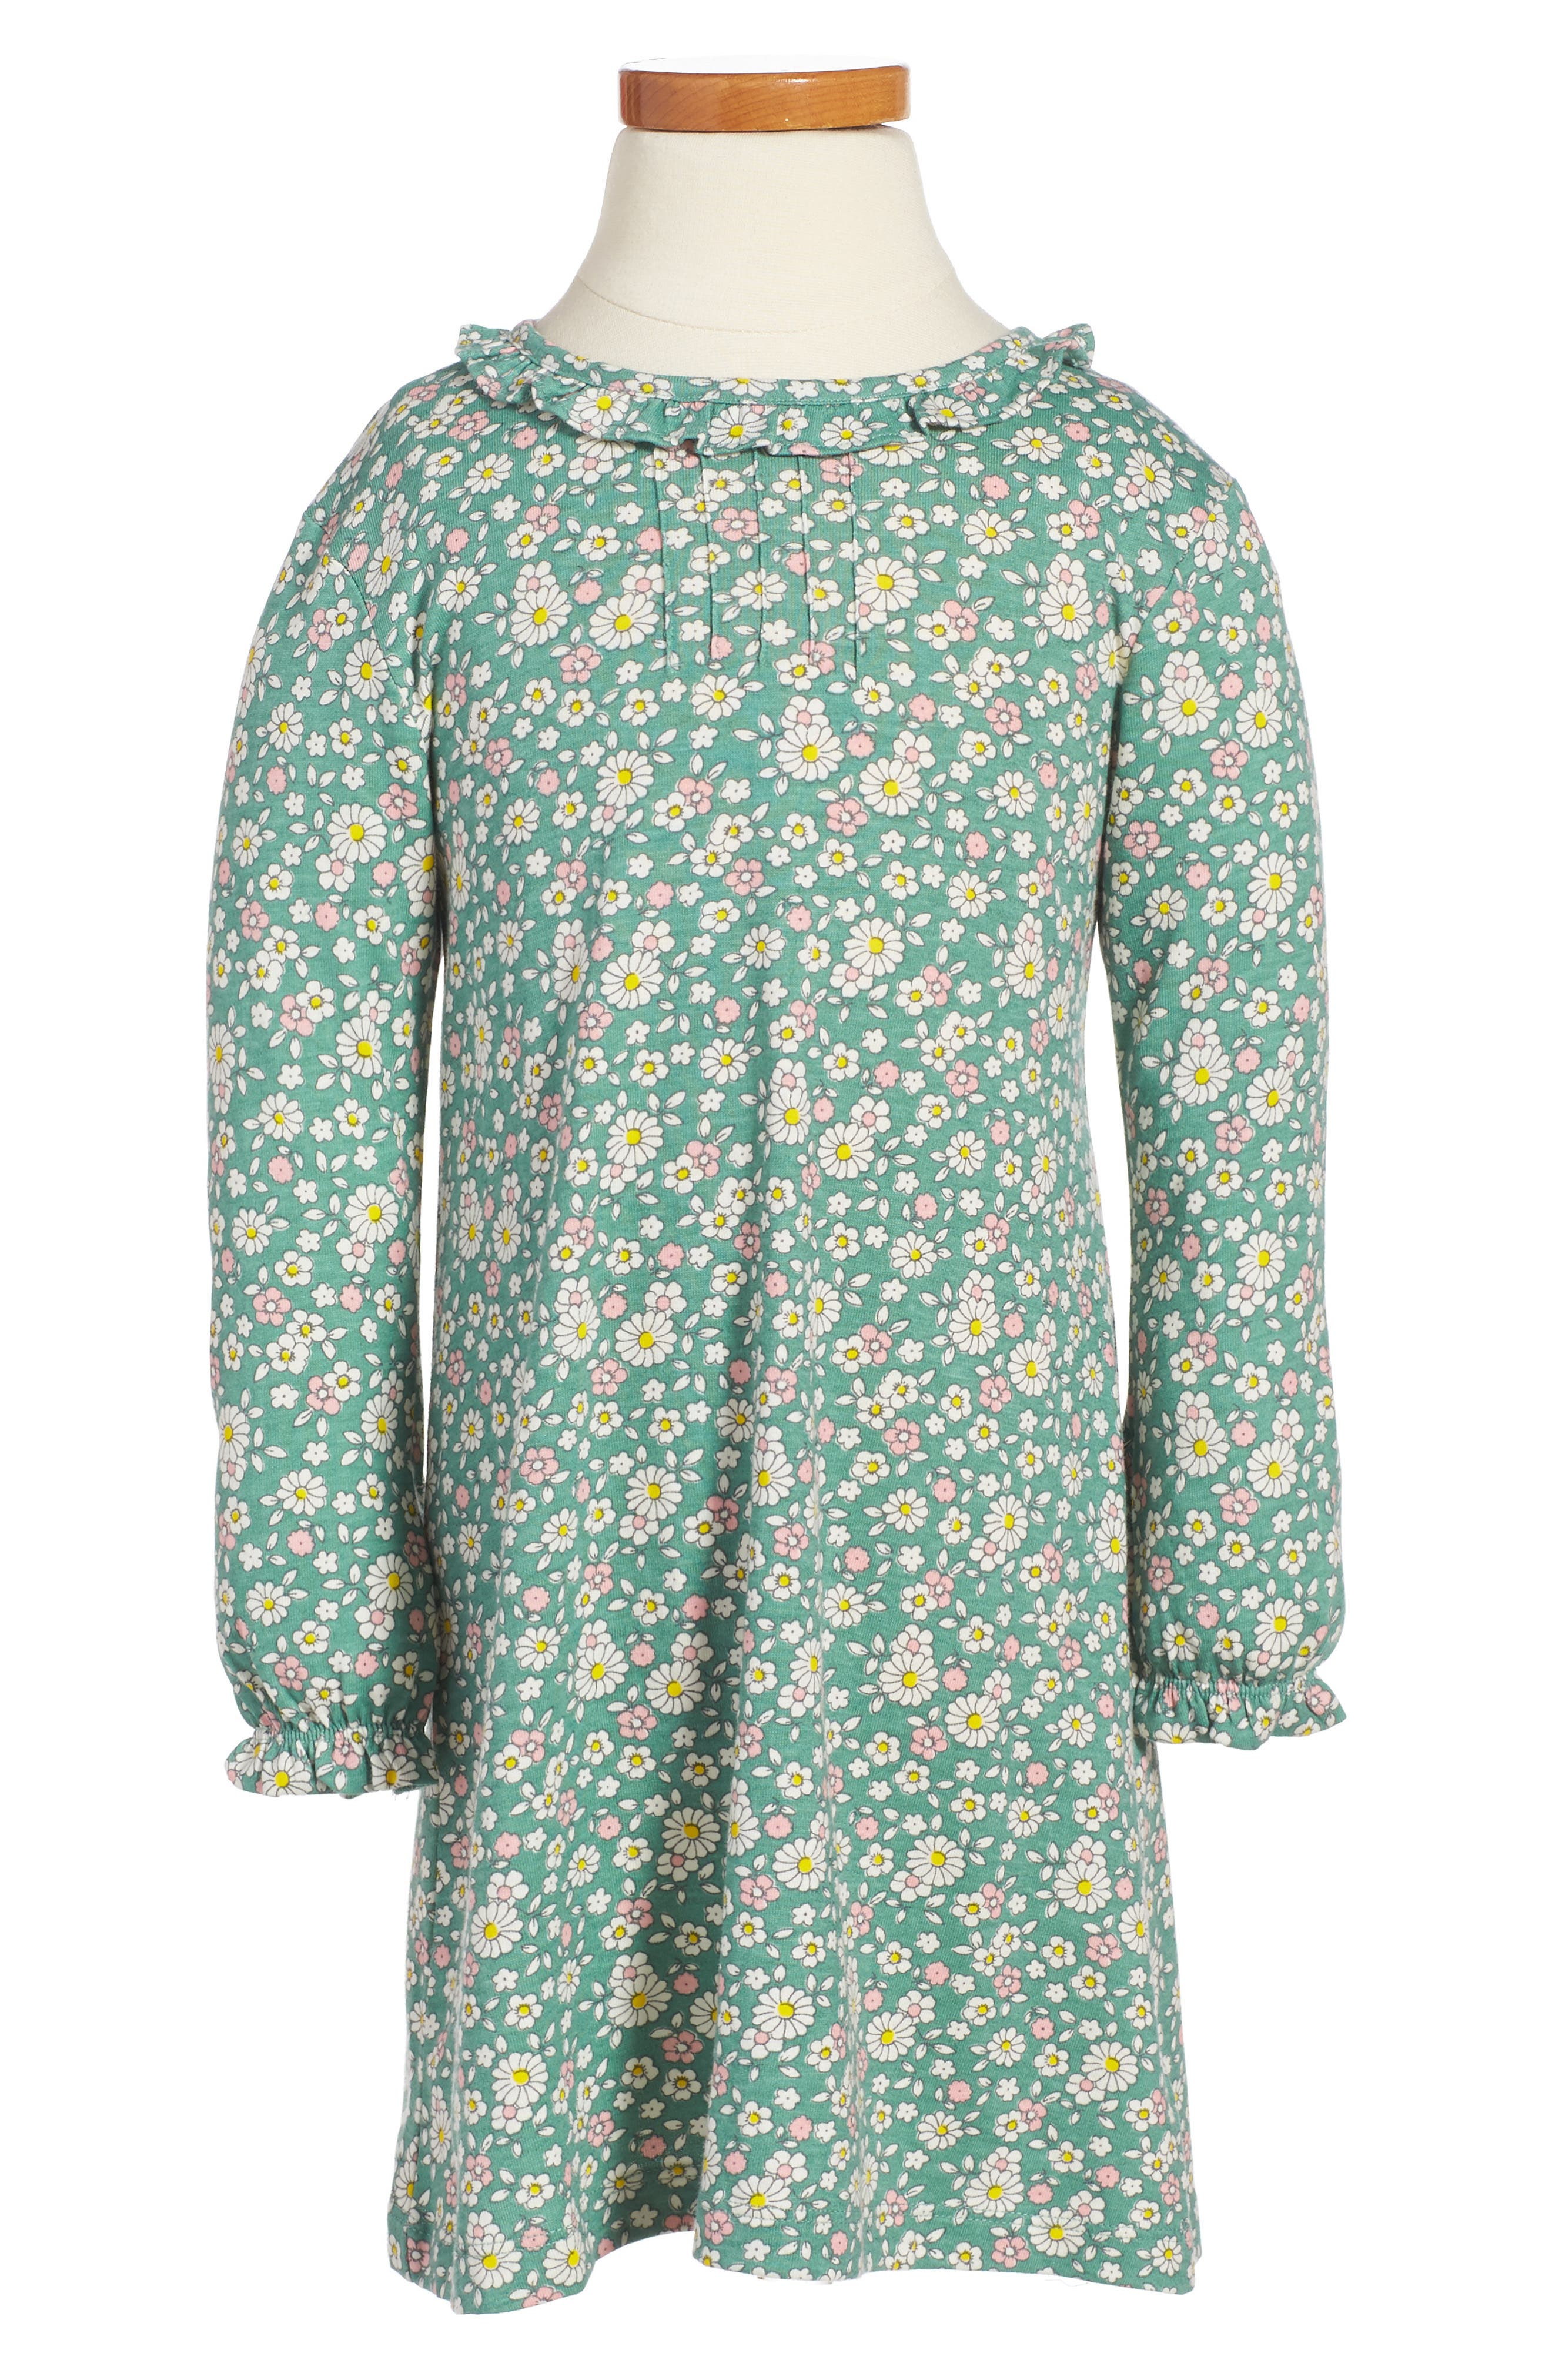 Main Image - Mini Boden Pretty Print Jersey Dress (Baby Girls & Toddler Girls)